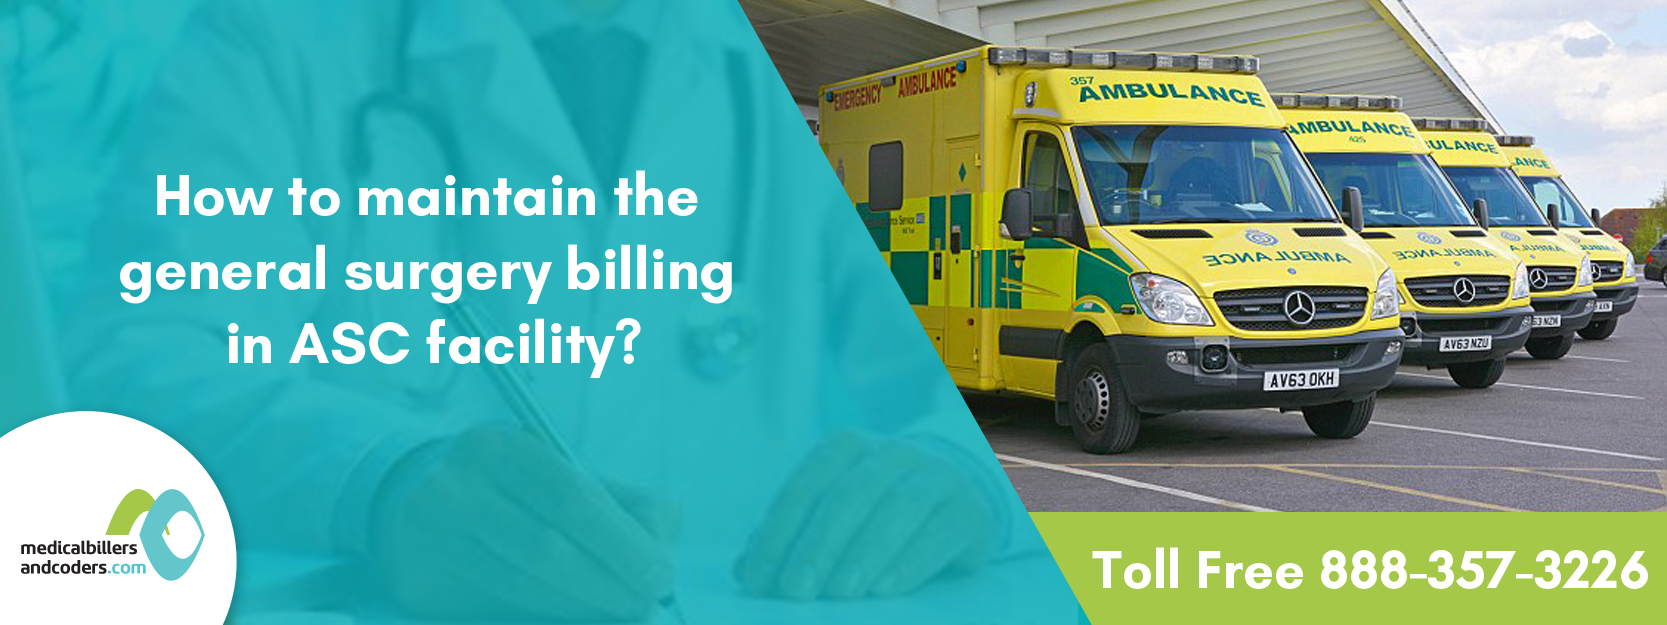 How to maintain the general surgery billing in ASC facility?